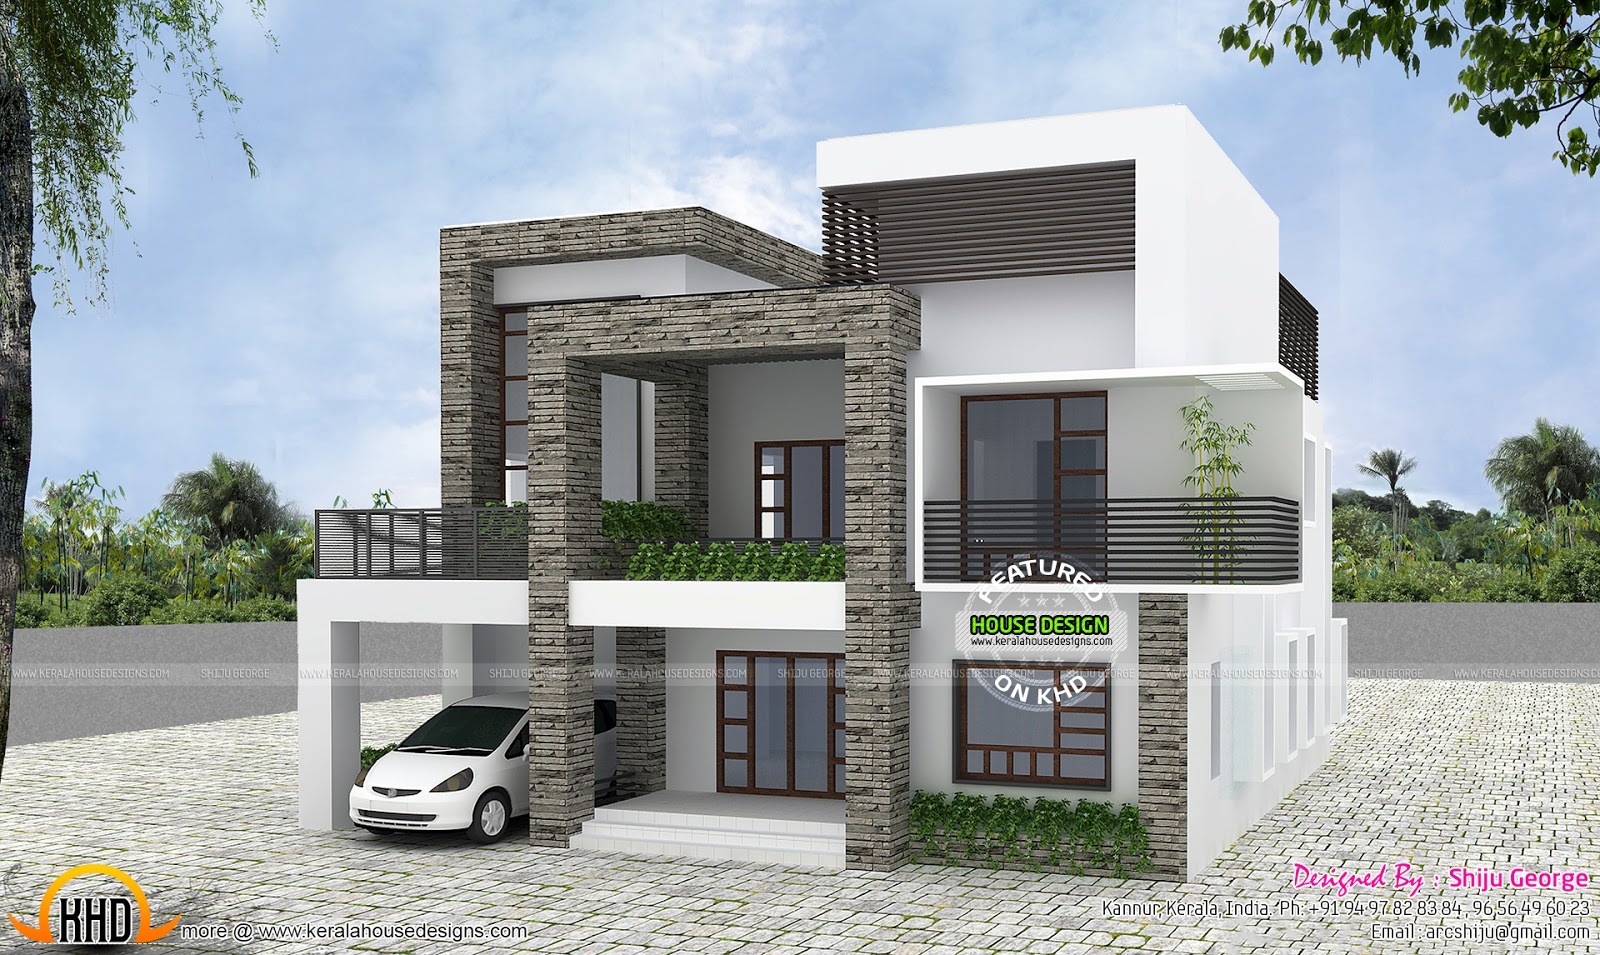 Contemporary house by shiju george kerala home design for Contemporary house in kerala